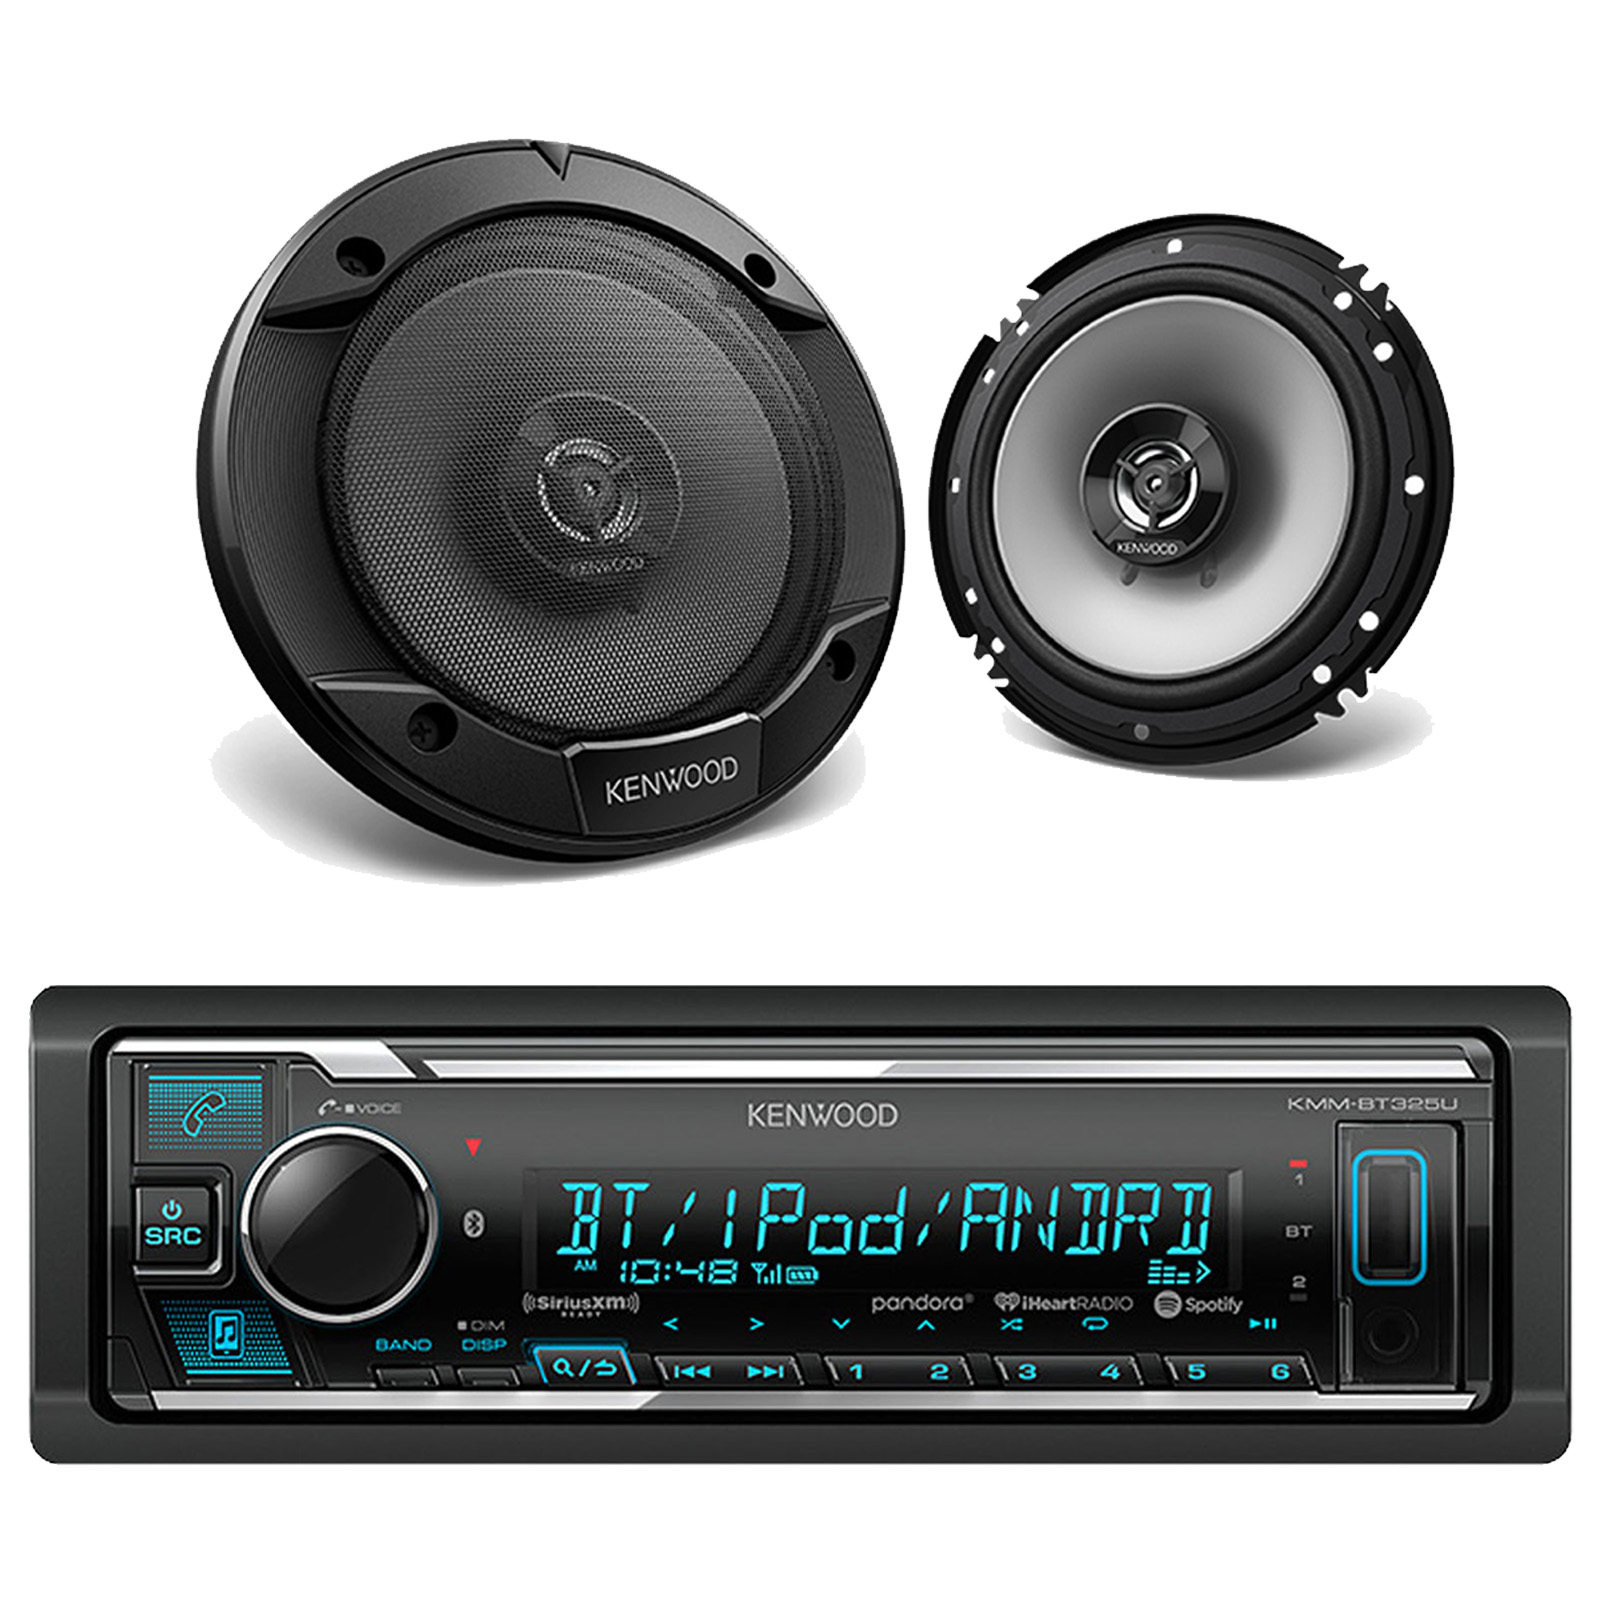 Kmmbt325u Car Ipod Iphone Bluetooth Usb Receiver 2 Kenwood 65 Kacm3004 4 Channel 600w Amp Marine Atv Boat Amplifier With Wiring Kit A Total Of Speakers Are Included In This Package